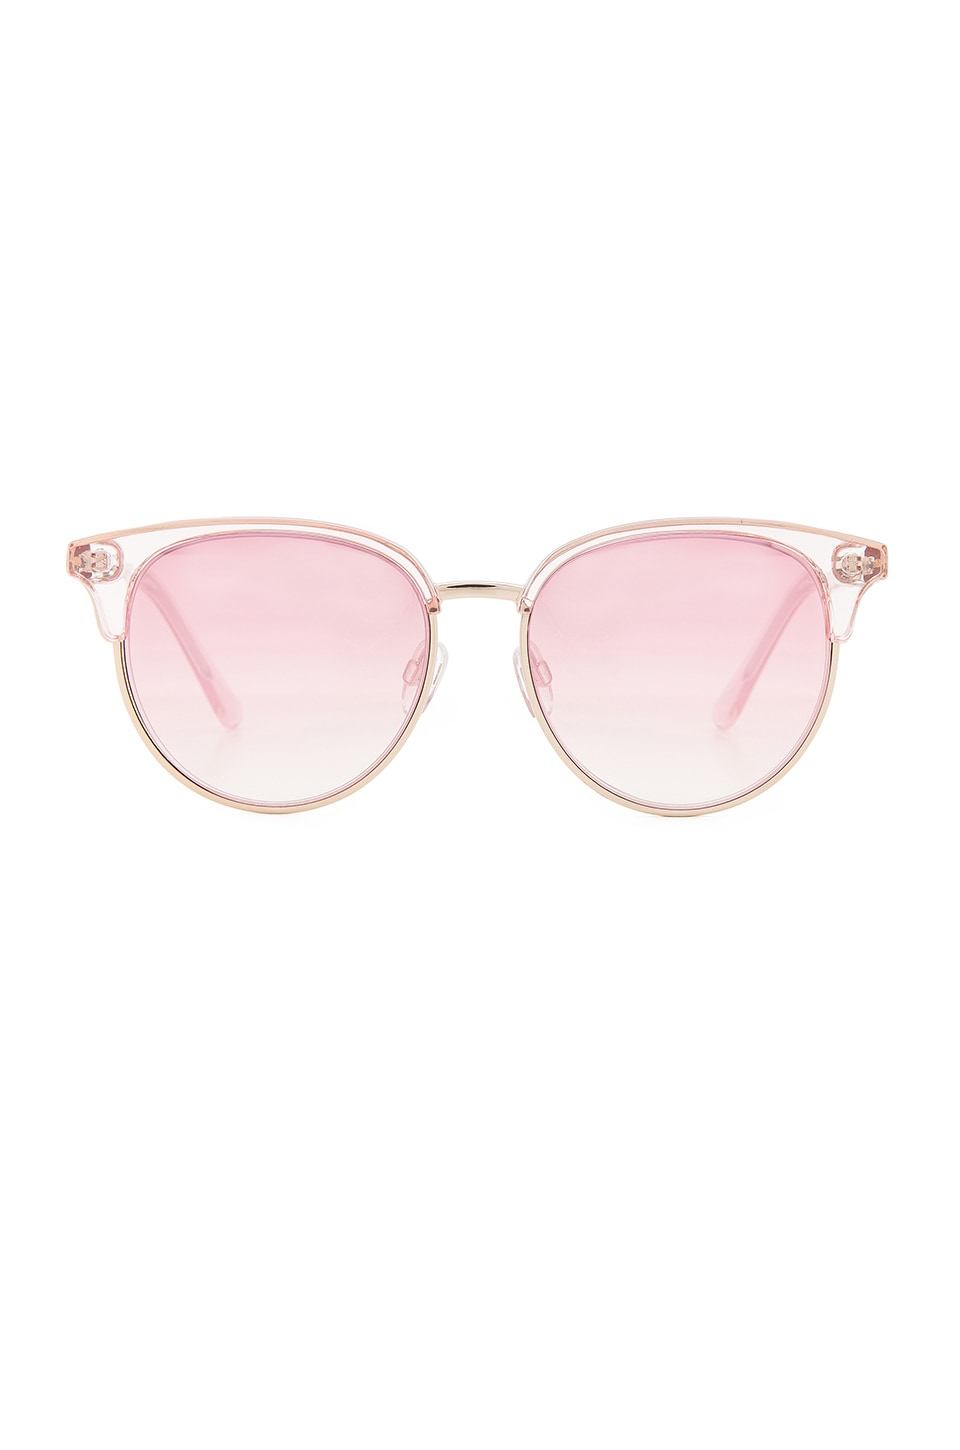 Le Specs Deja Vu in Pink Diamond